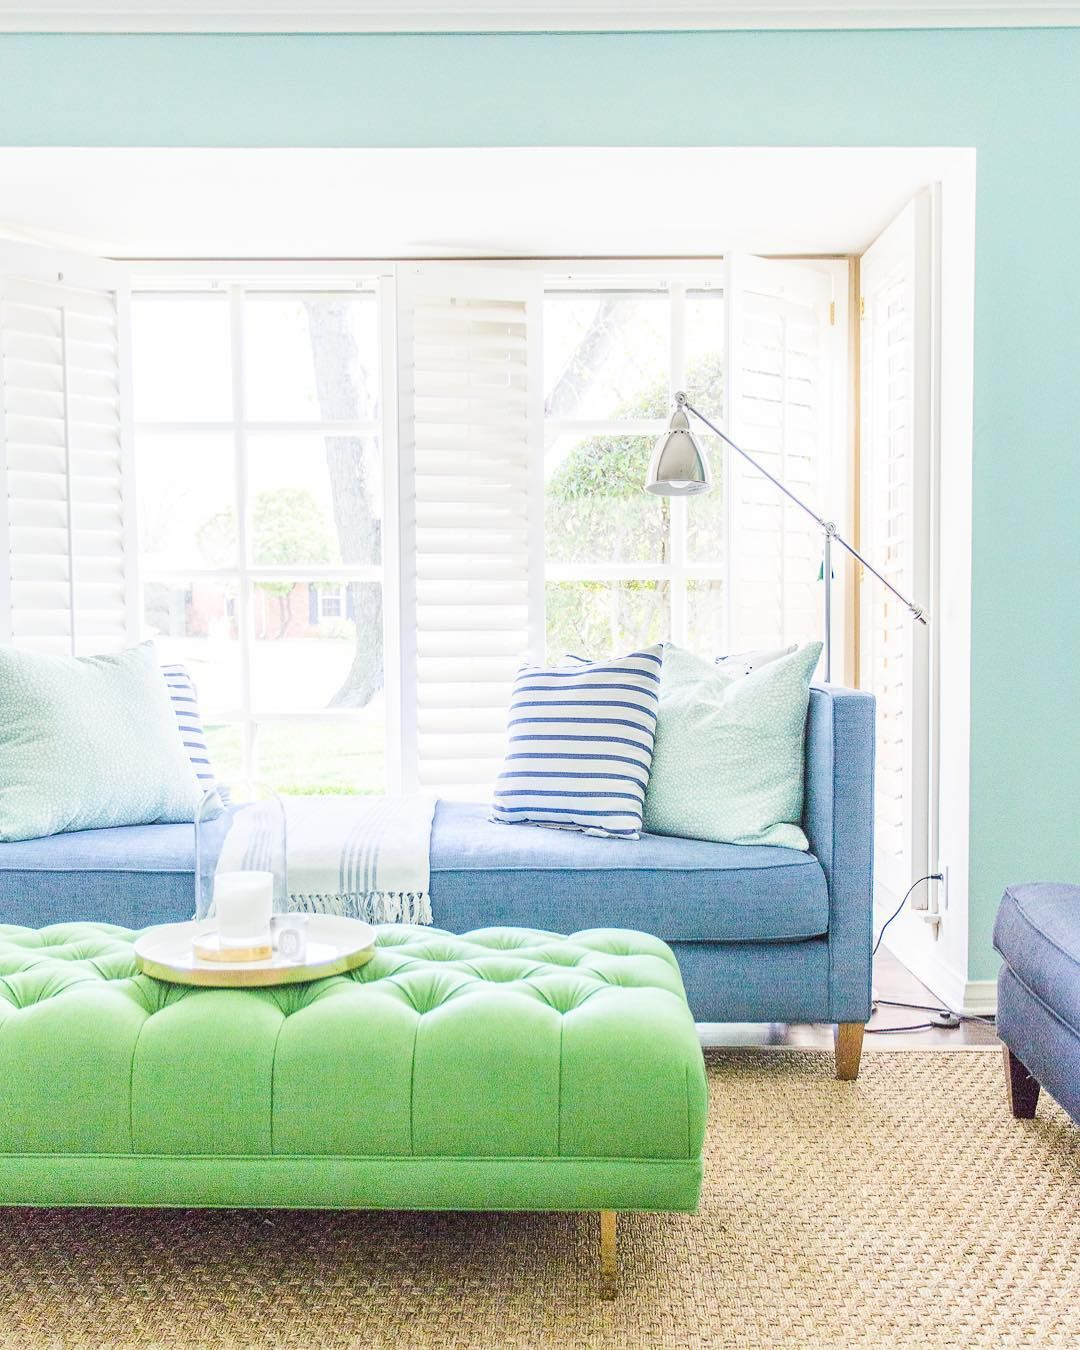 94 Likes 9 Comments Color Design Decor Okc Pencilshavings On Instagram Confession This Is To Living Room Colors Home Decor Colourful Living Room